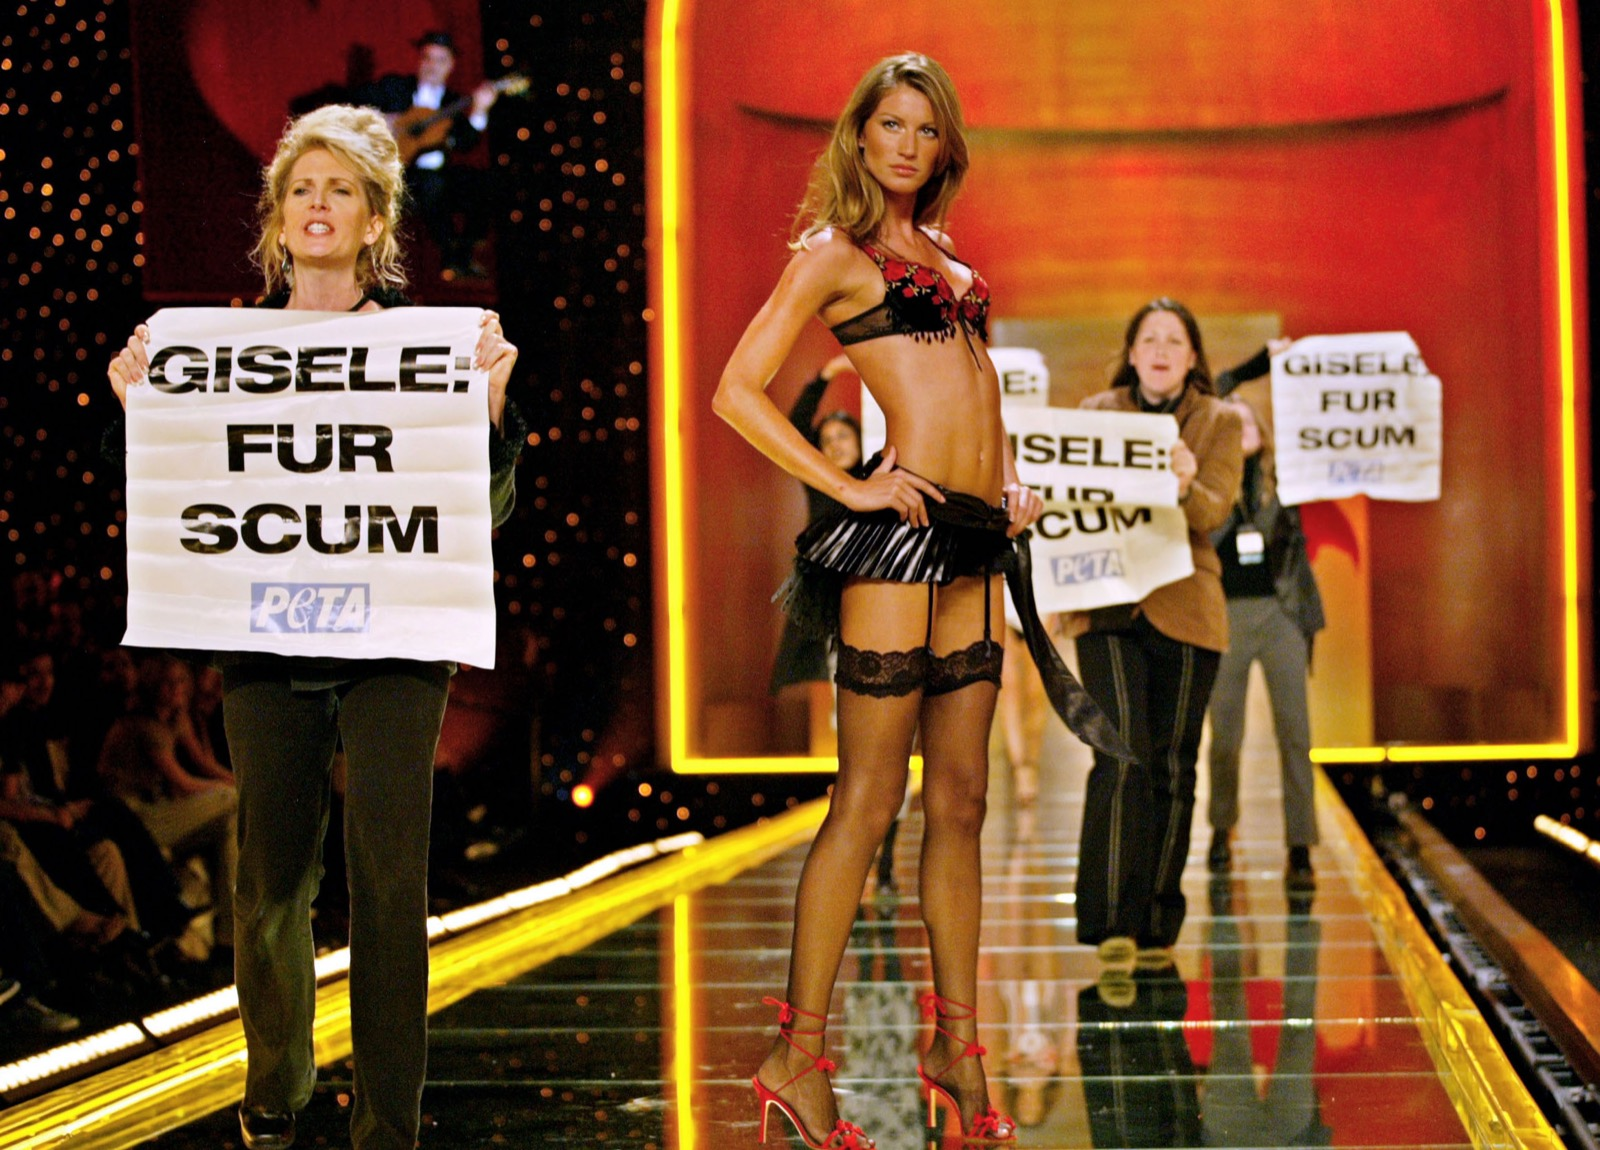 Animal rights activists from PETA rush the stage as supermodel Gisele Bundchen models an outfit during the Victoria's Secret 8th Annual Runway fashion show in New York, November 14, 2002. Timothy C. Clary/AFP/Getty Images